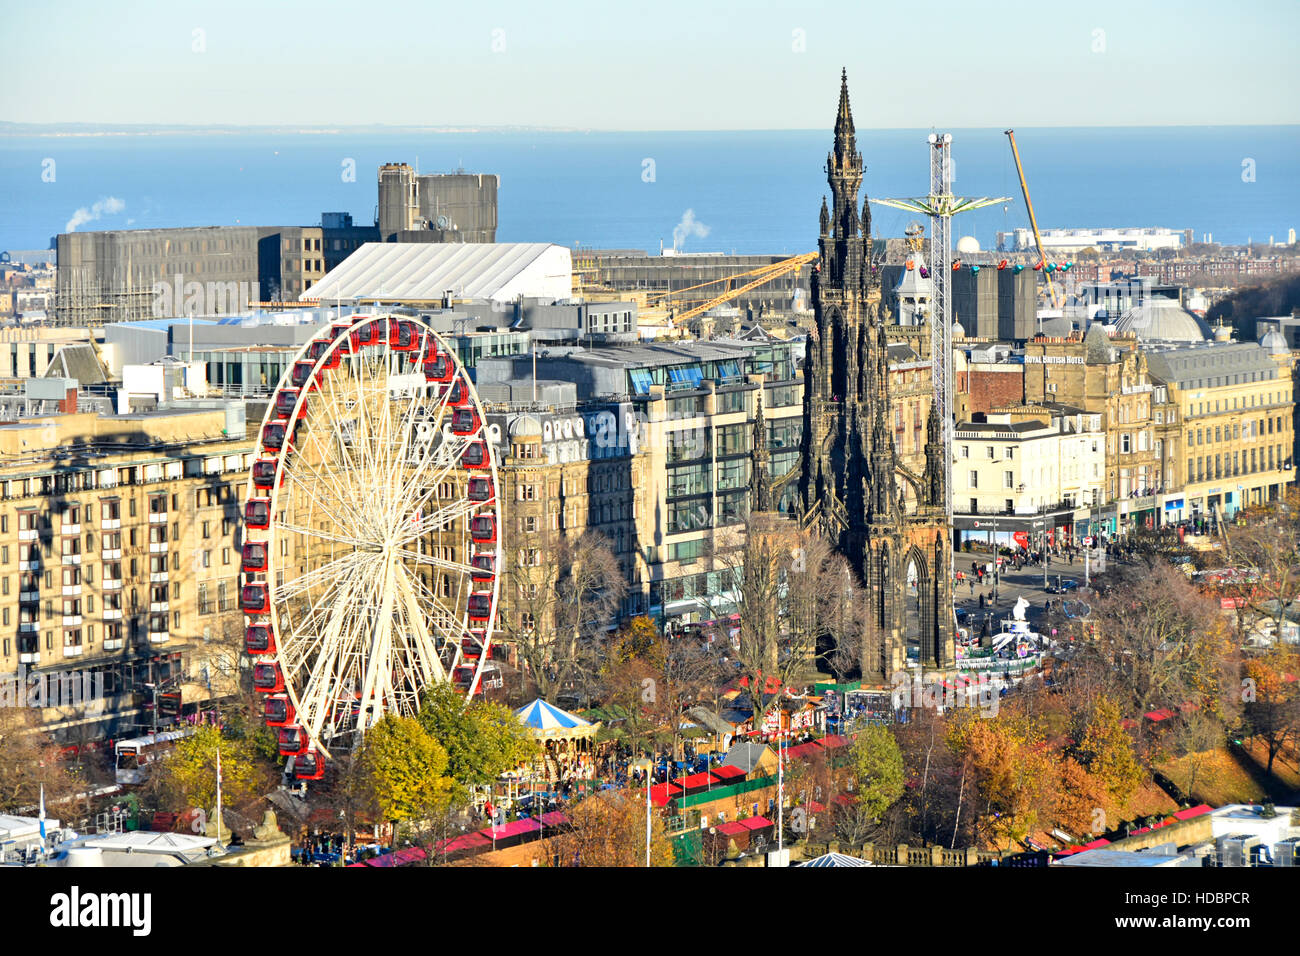 Scotland uk Edinburgh European Christmas Market & Ferris fairground ride East Princes Street gardens Scott Monument - Stock Image